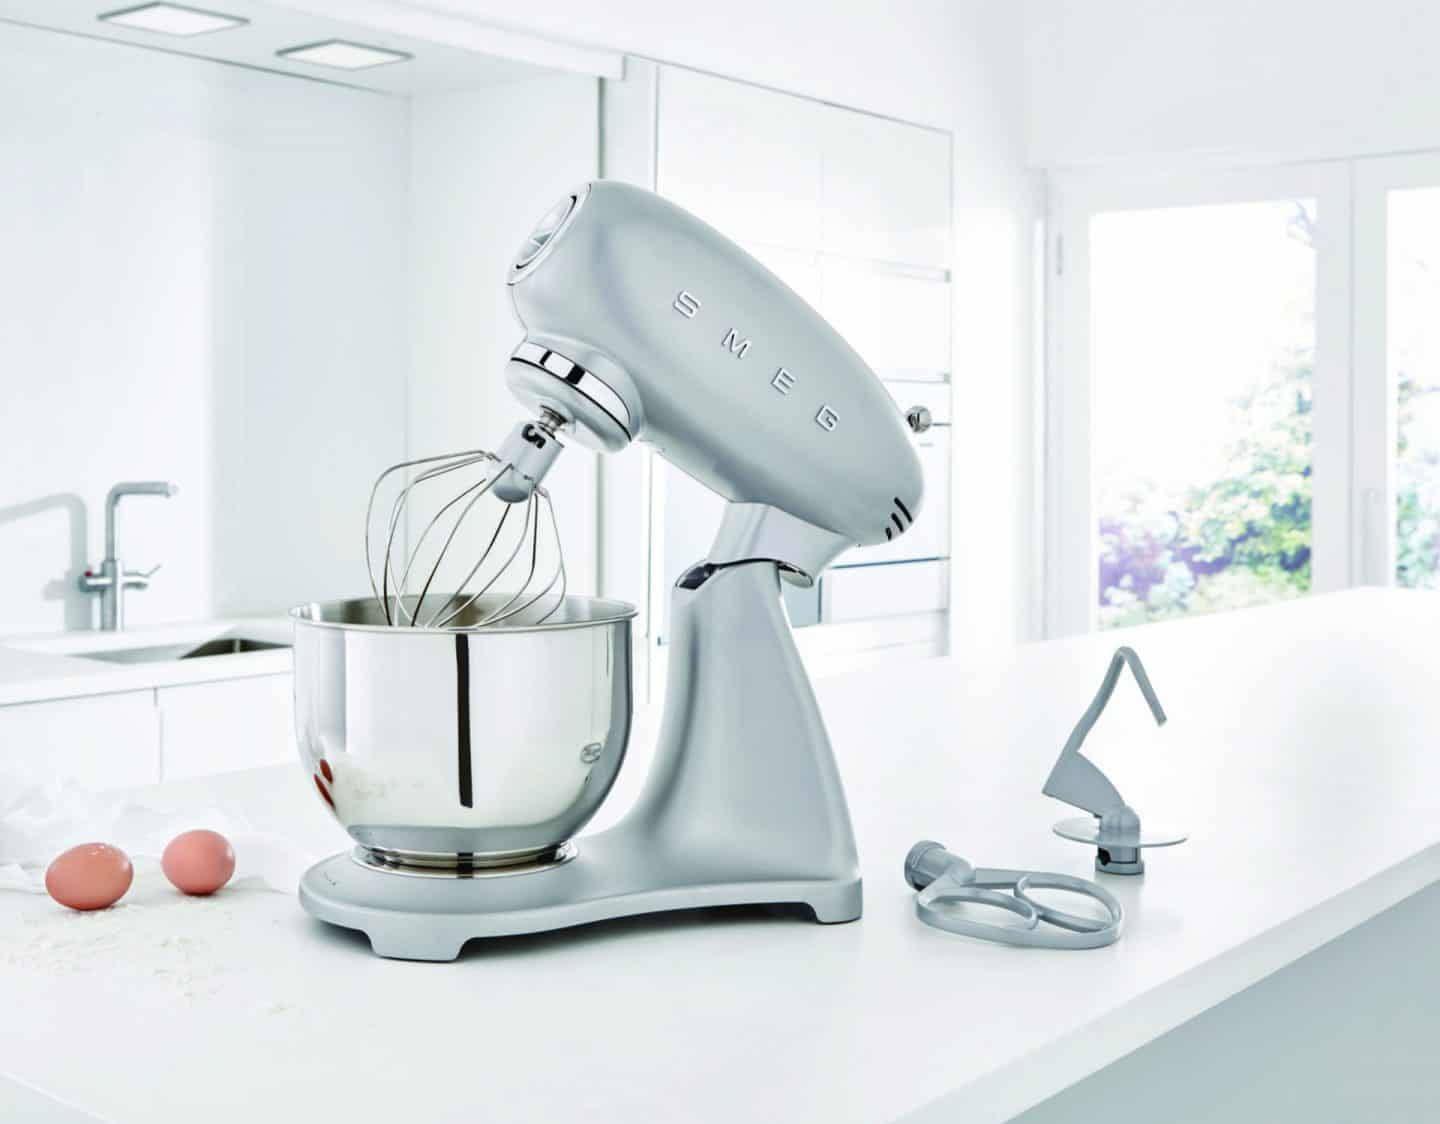 Giveaway : Smeg Stand Mixer worth £349.00 - The Design Sheppard